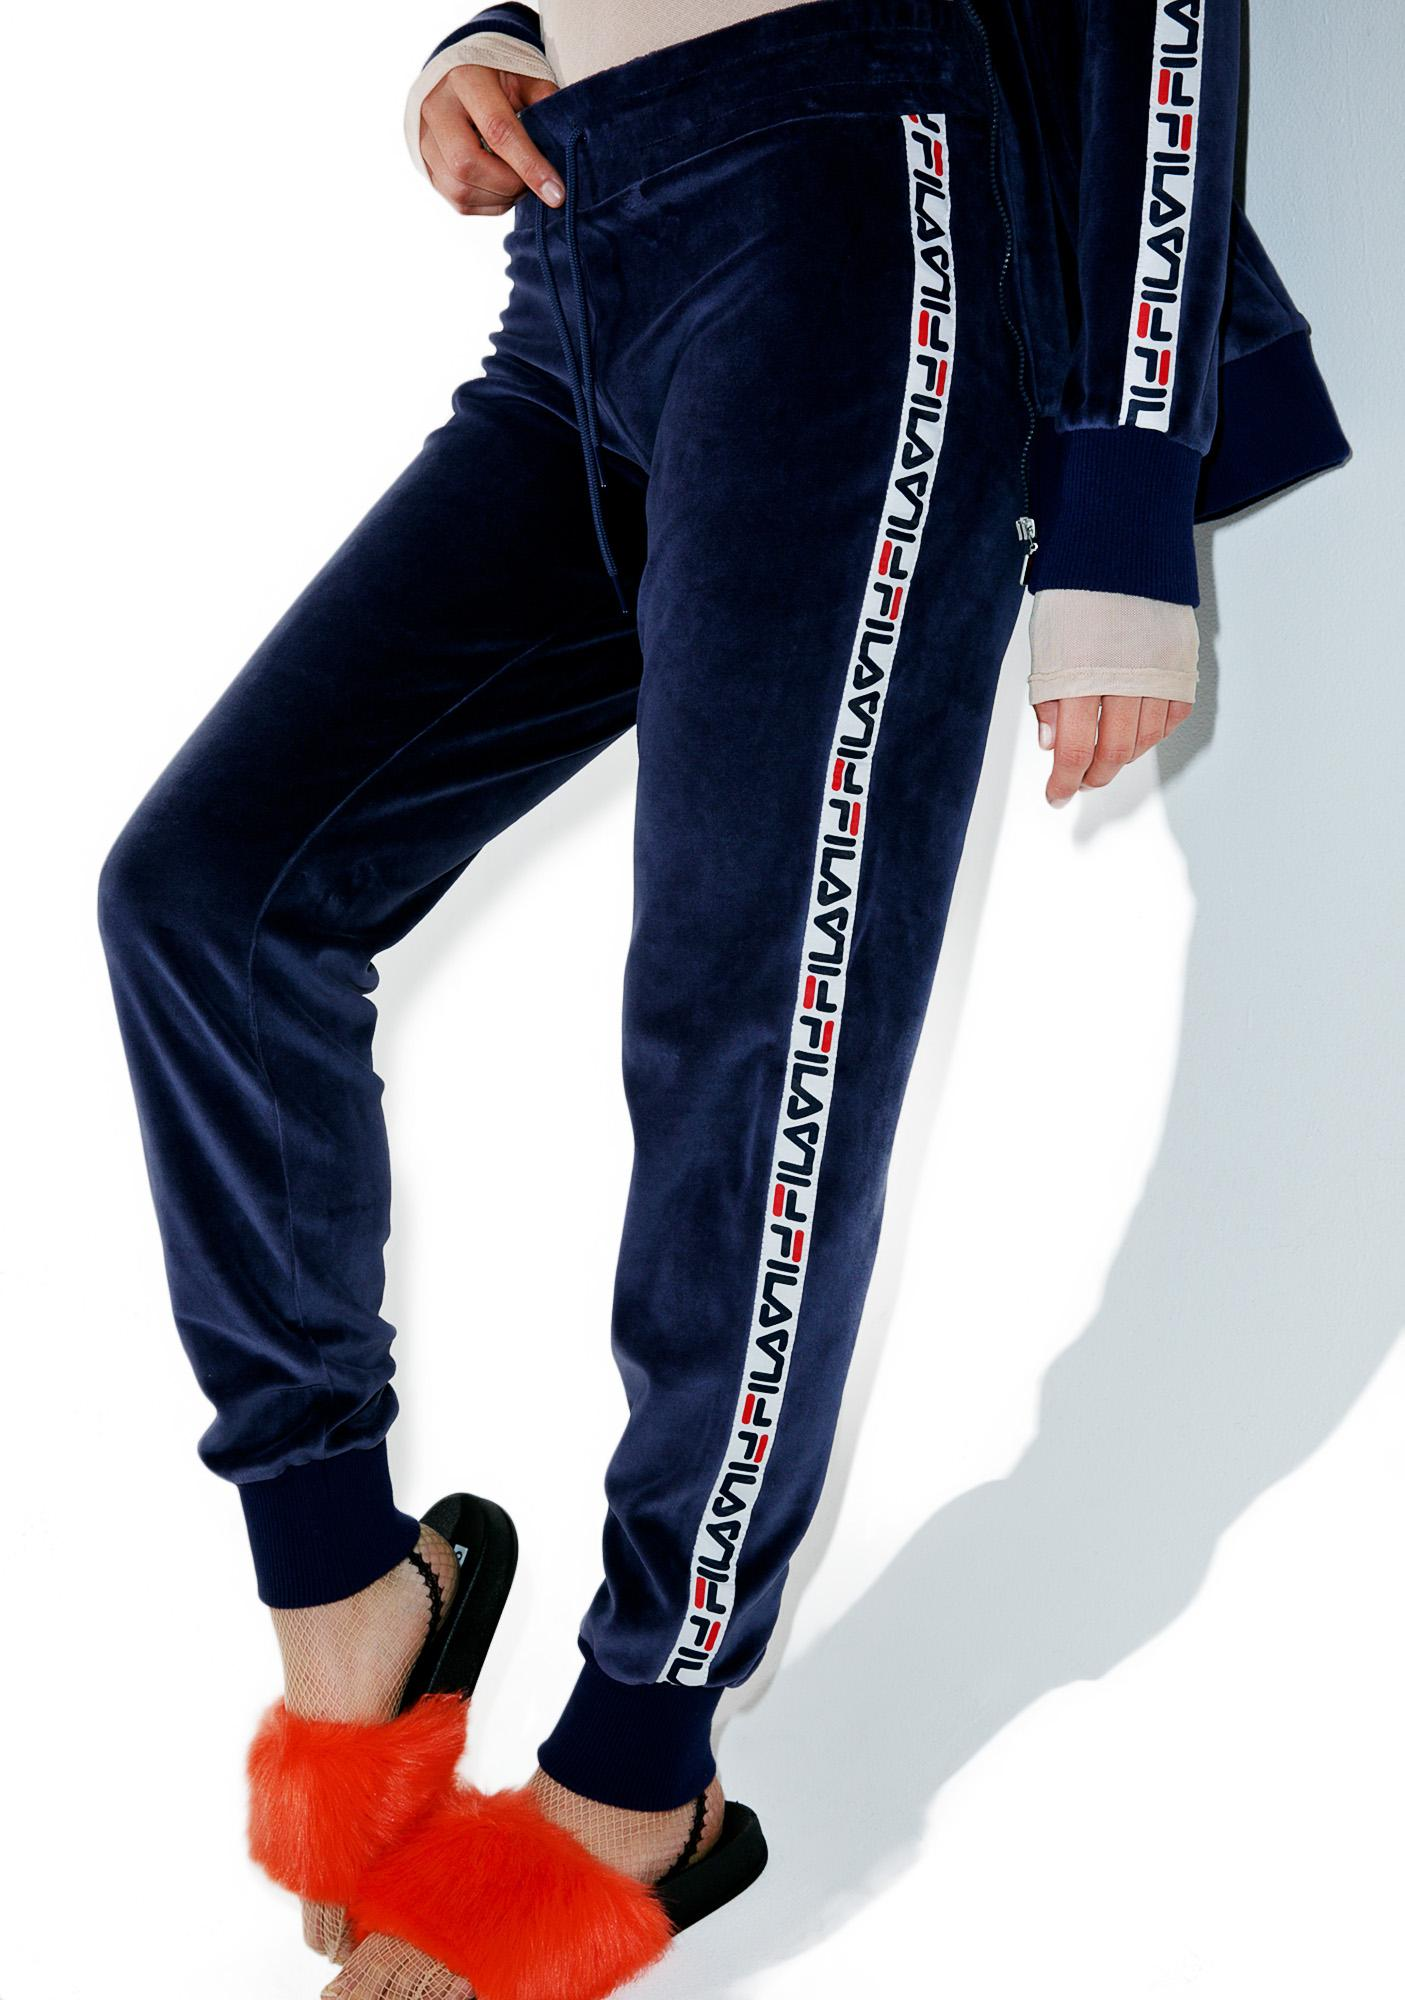 fila sweatpants